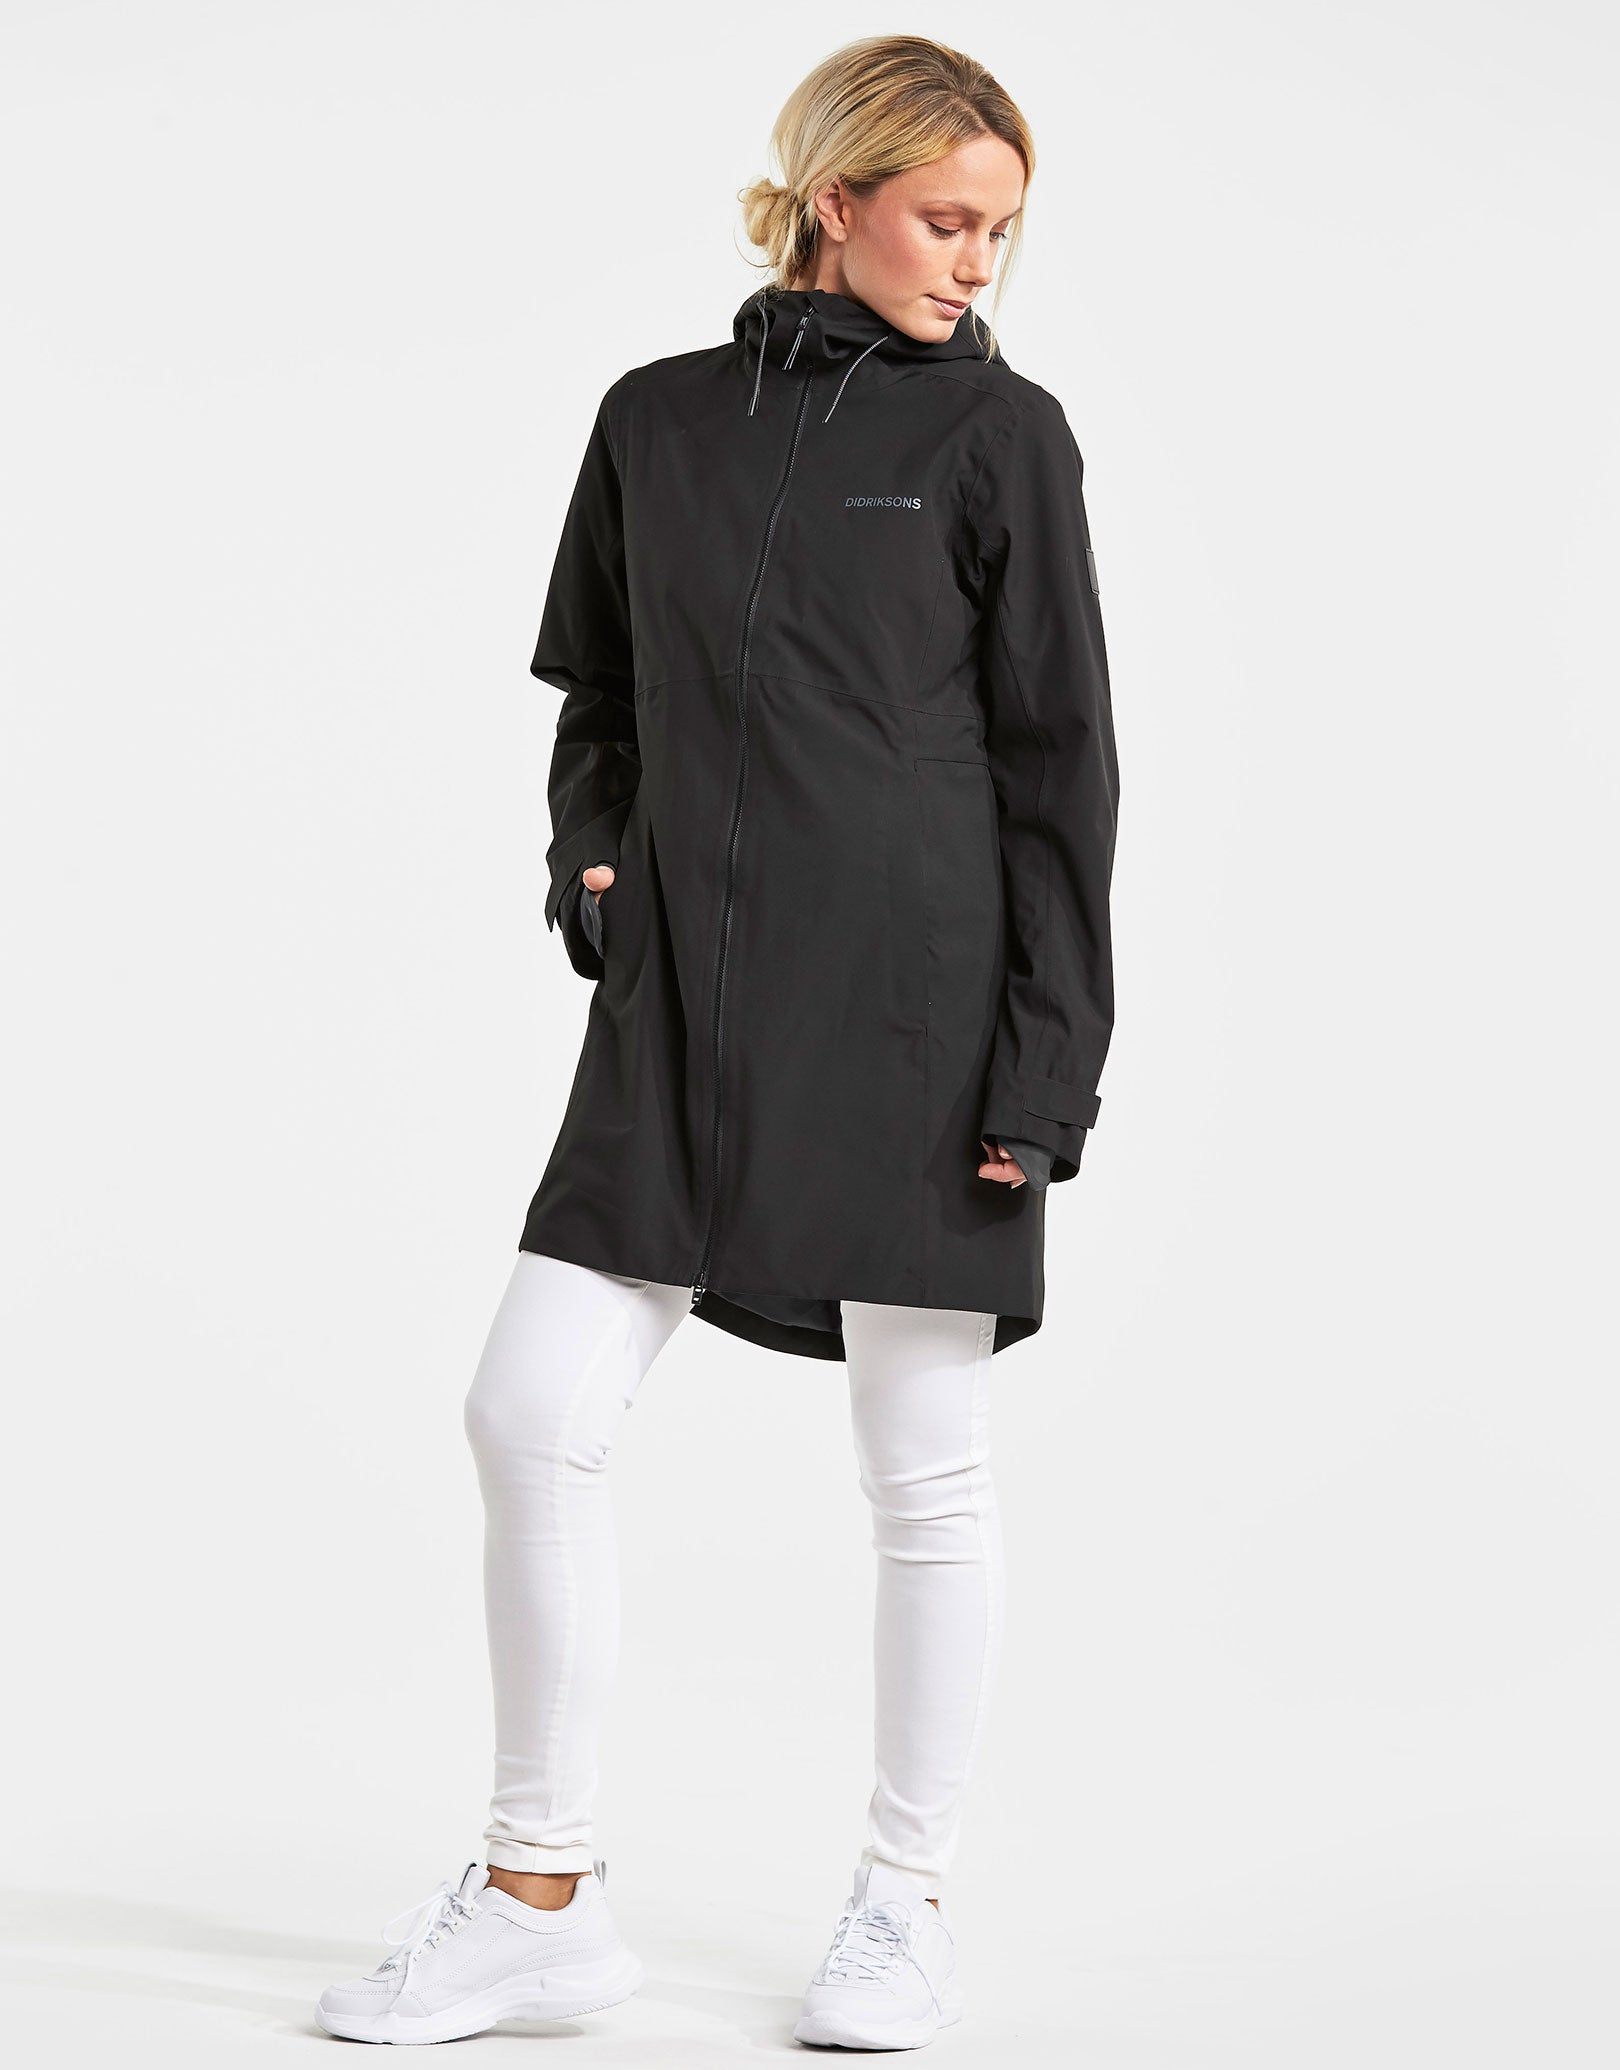 ffbb678470 Didriksons Womens Bea Parka Jacket - Black | Simply Hike UK